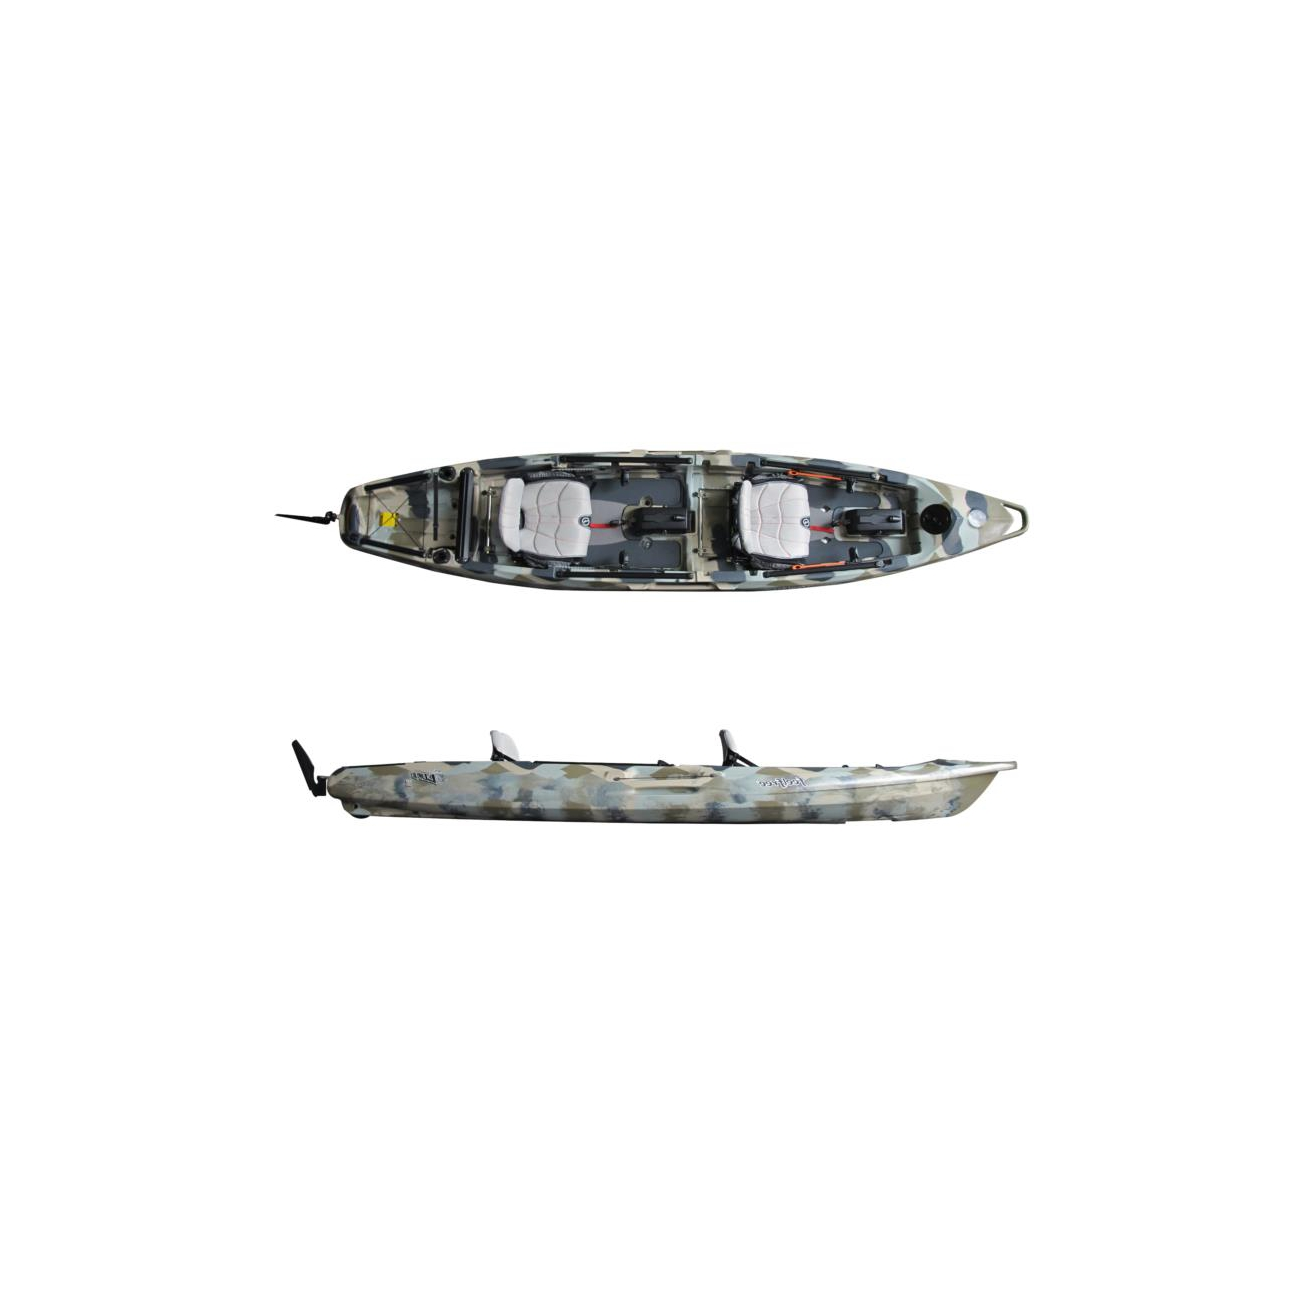 https://feelfreekayak.eu/721-small_default/lure-ii-tandem.jpg